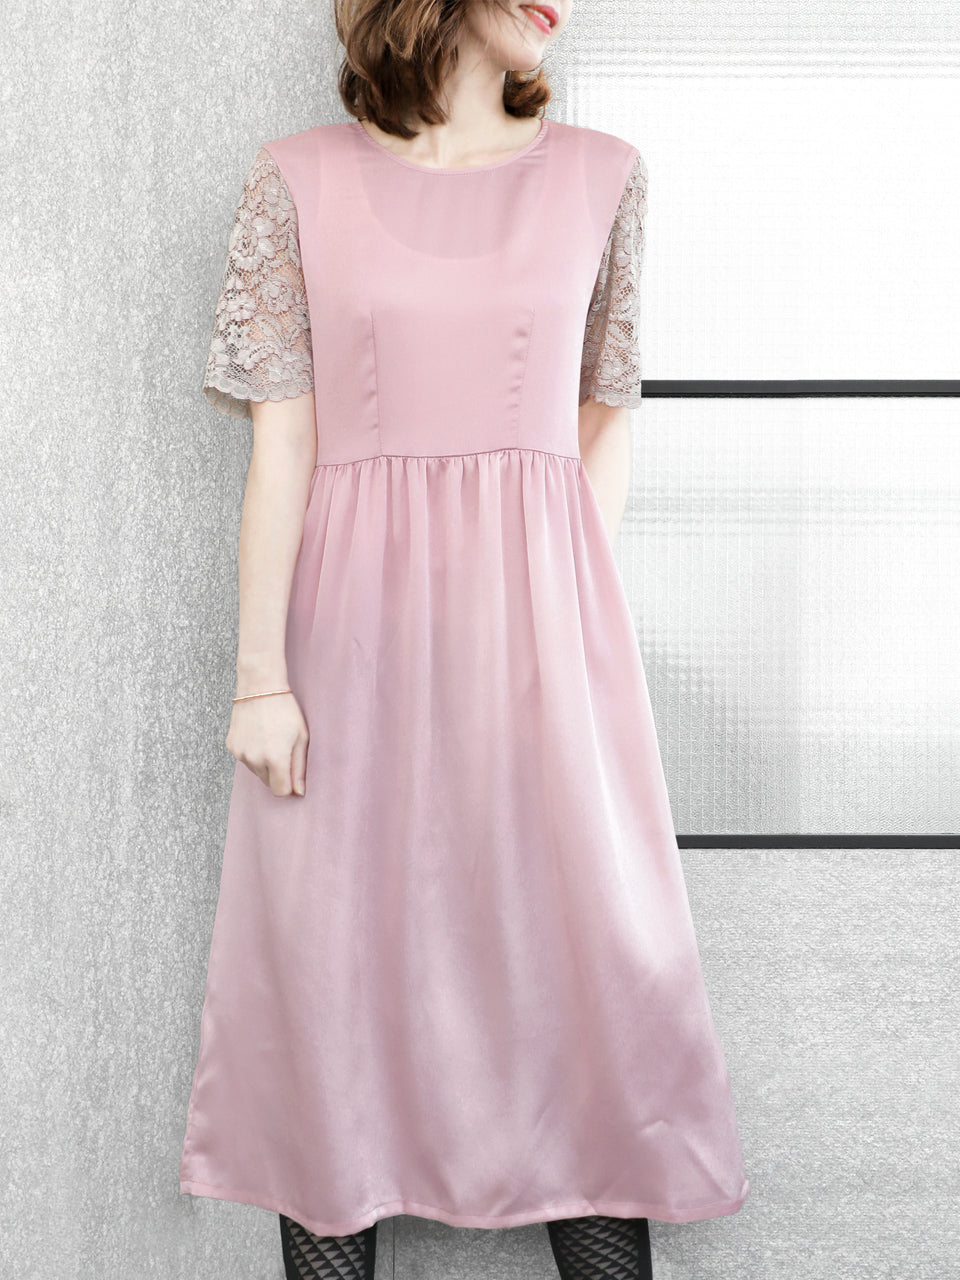 Final Sale! Light Pink Lace Sleeves Contrast Satin Midi Dress